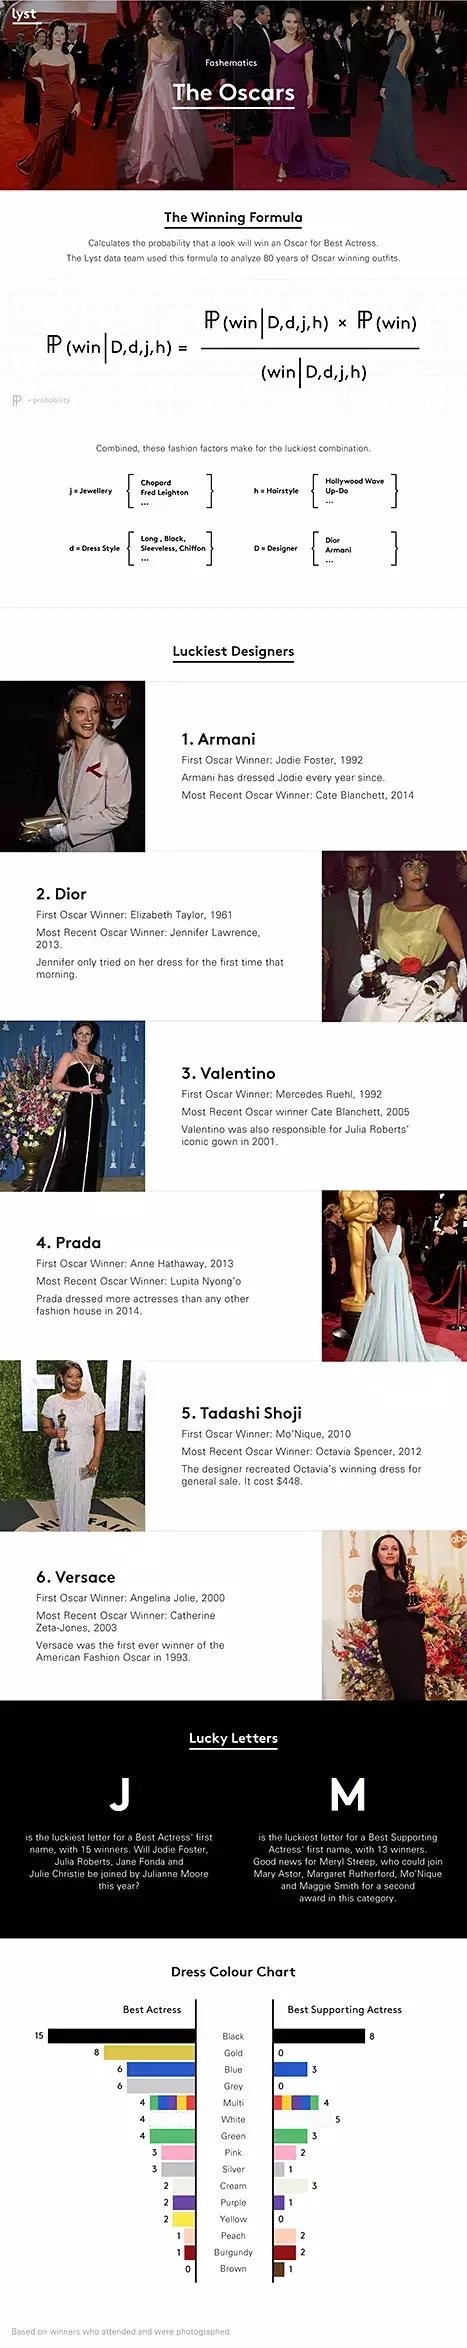 Oscars 2015:Predections #Infographic